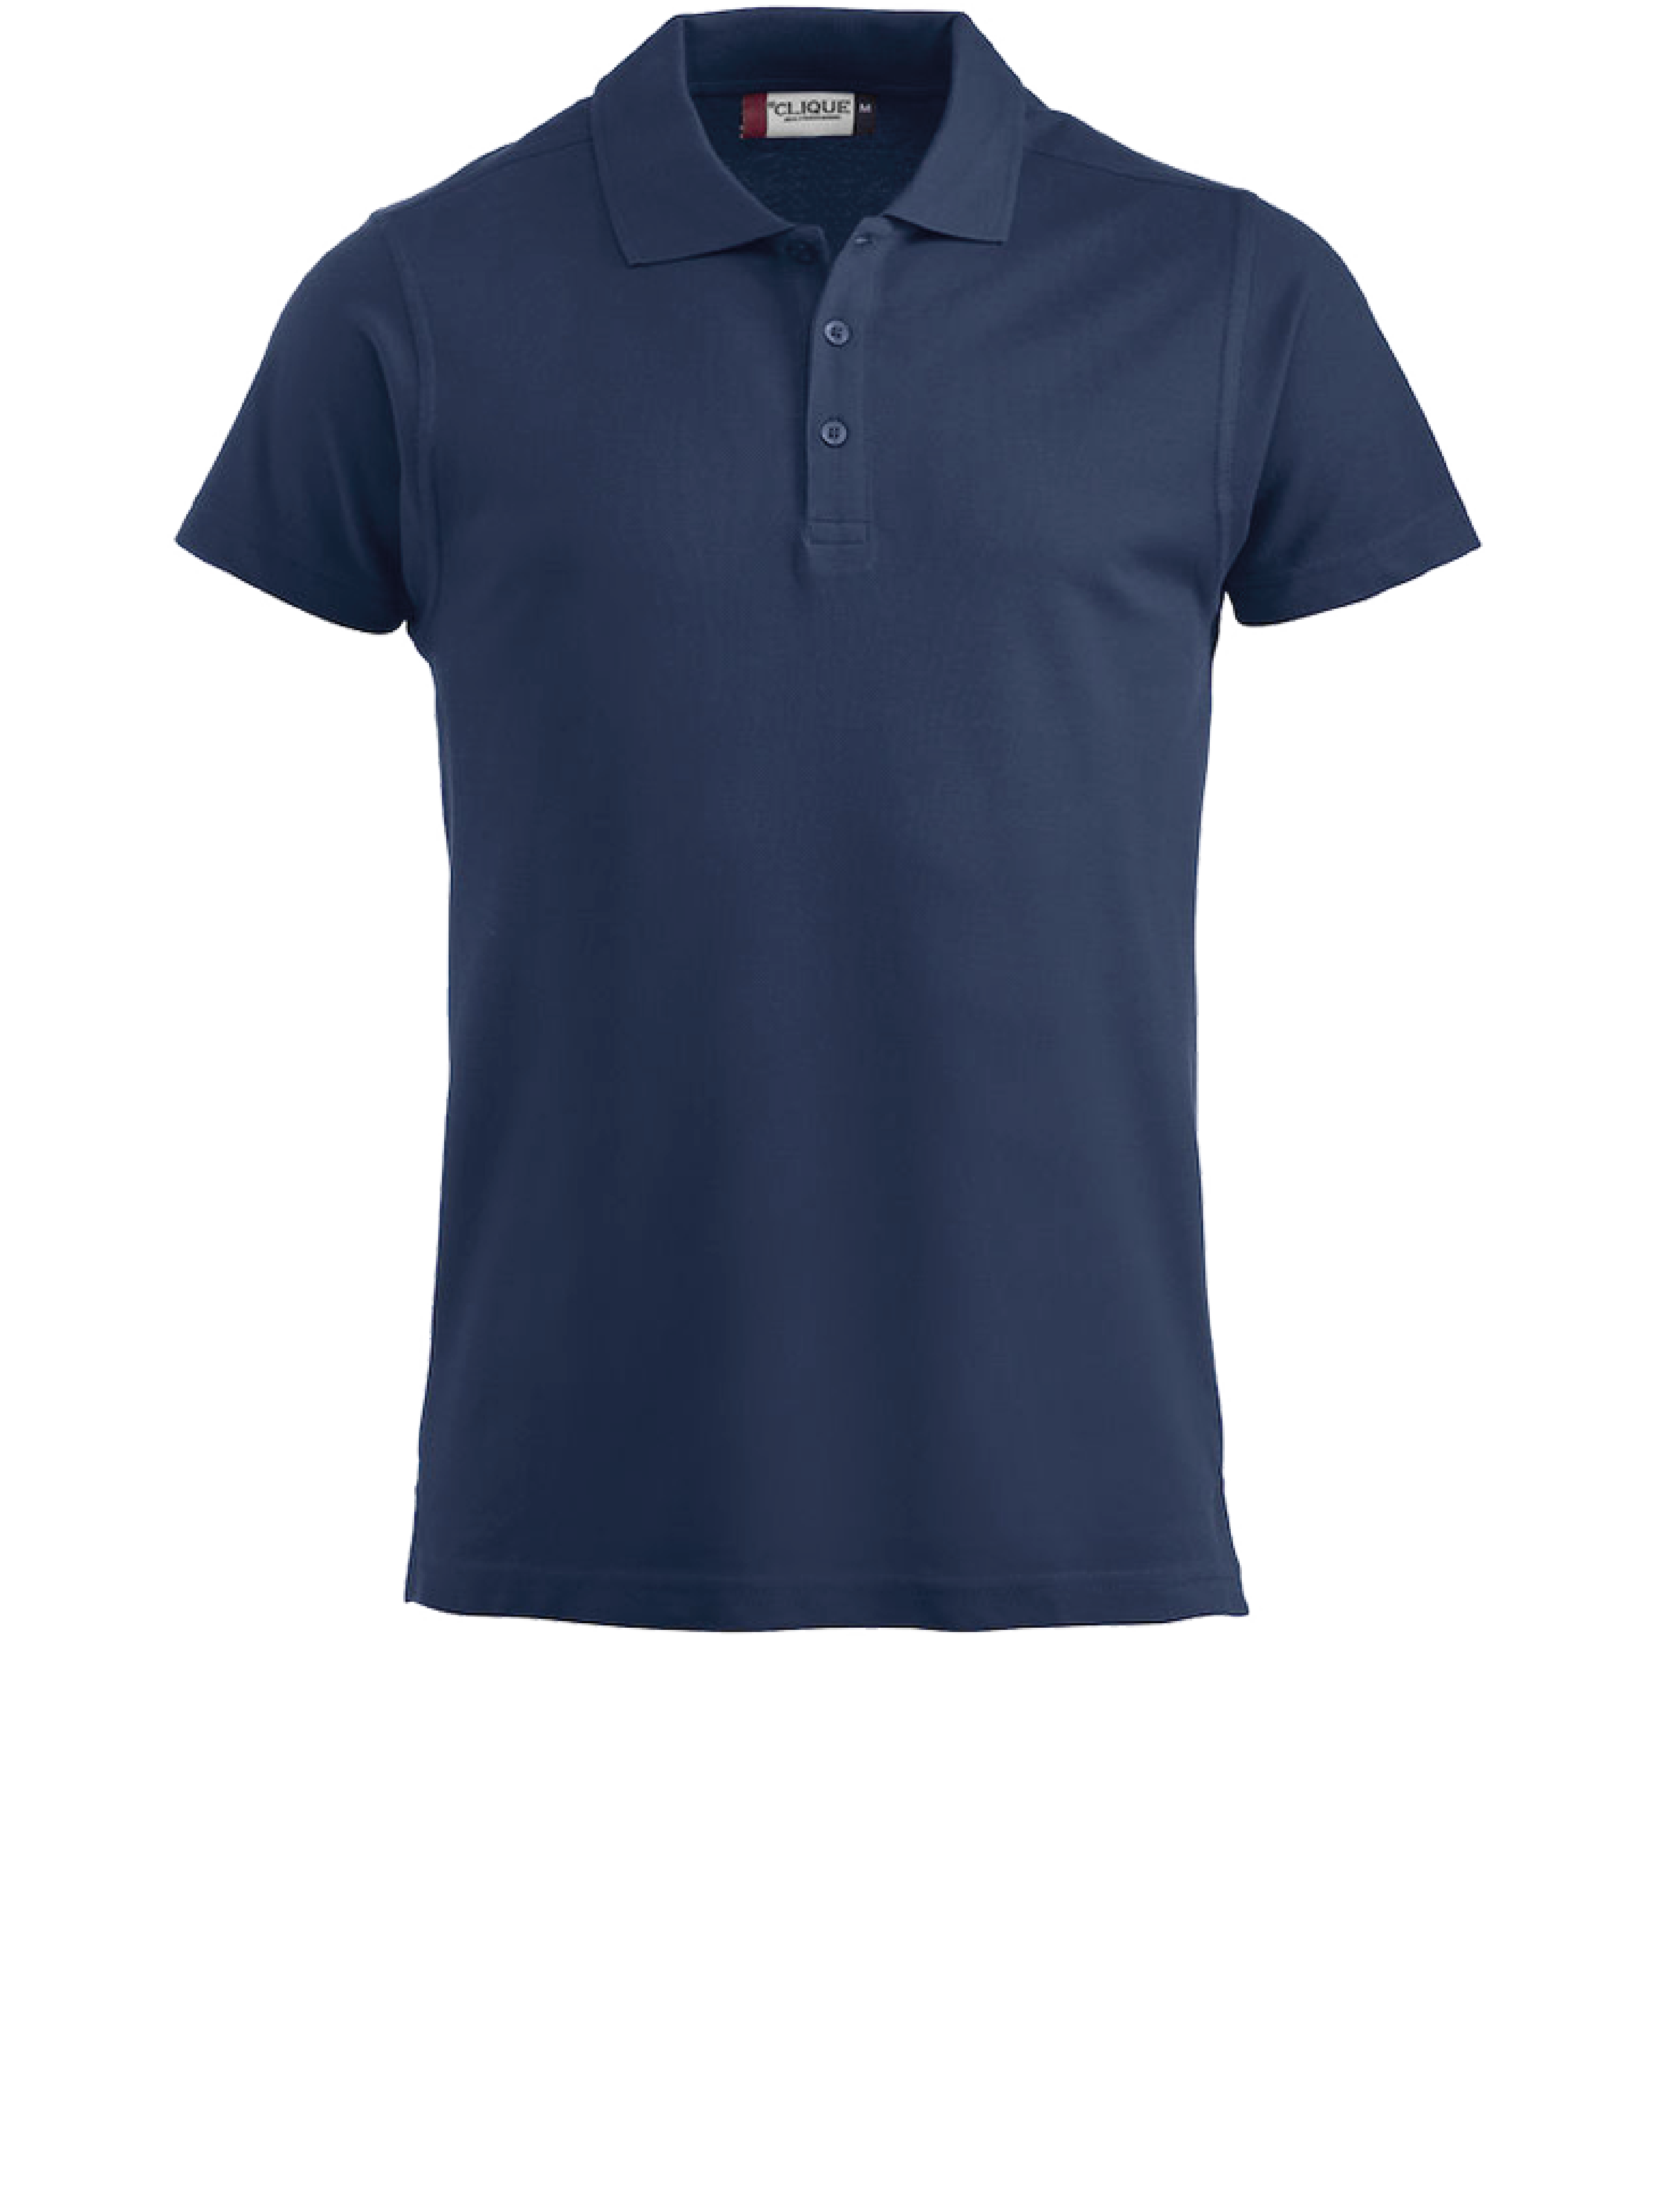 polo dark navy-01.png